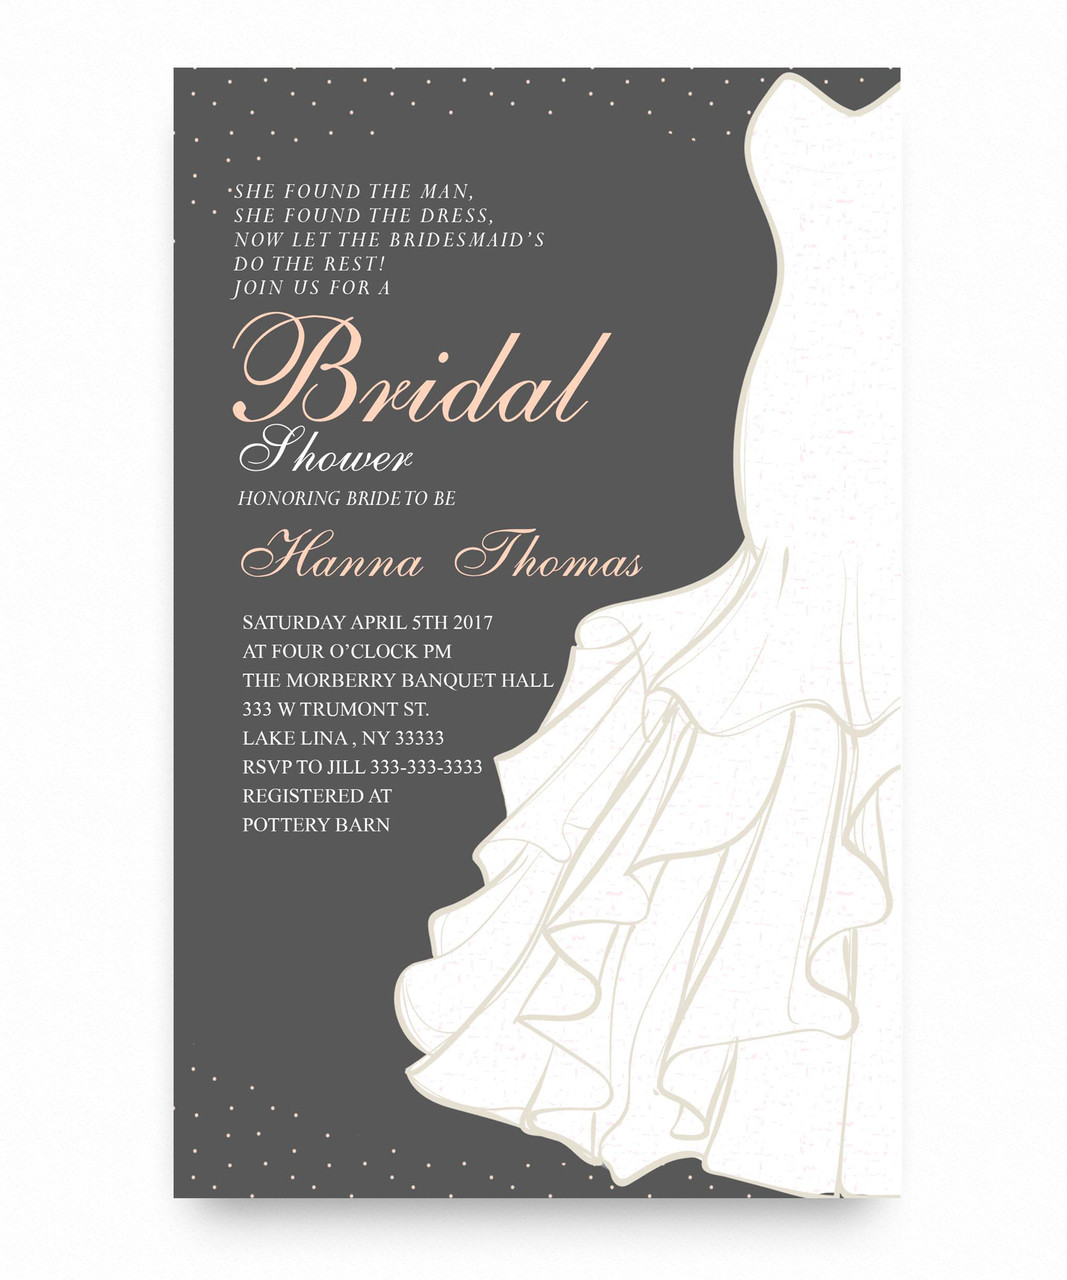 Bridal shower invitation, wedding dress